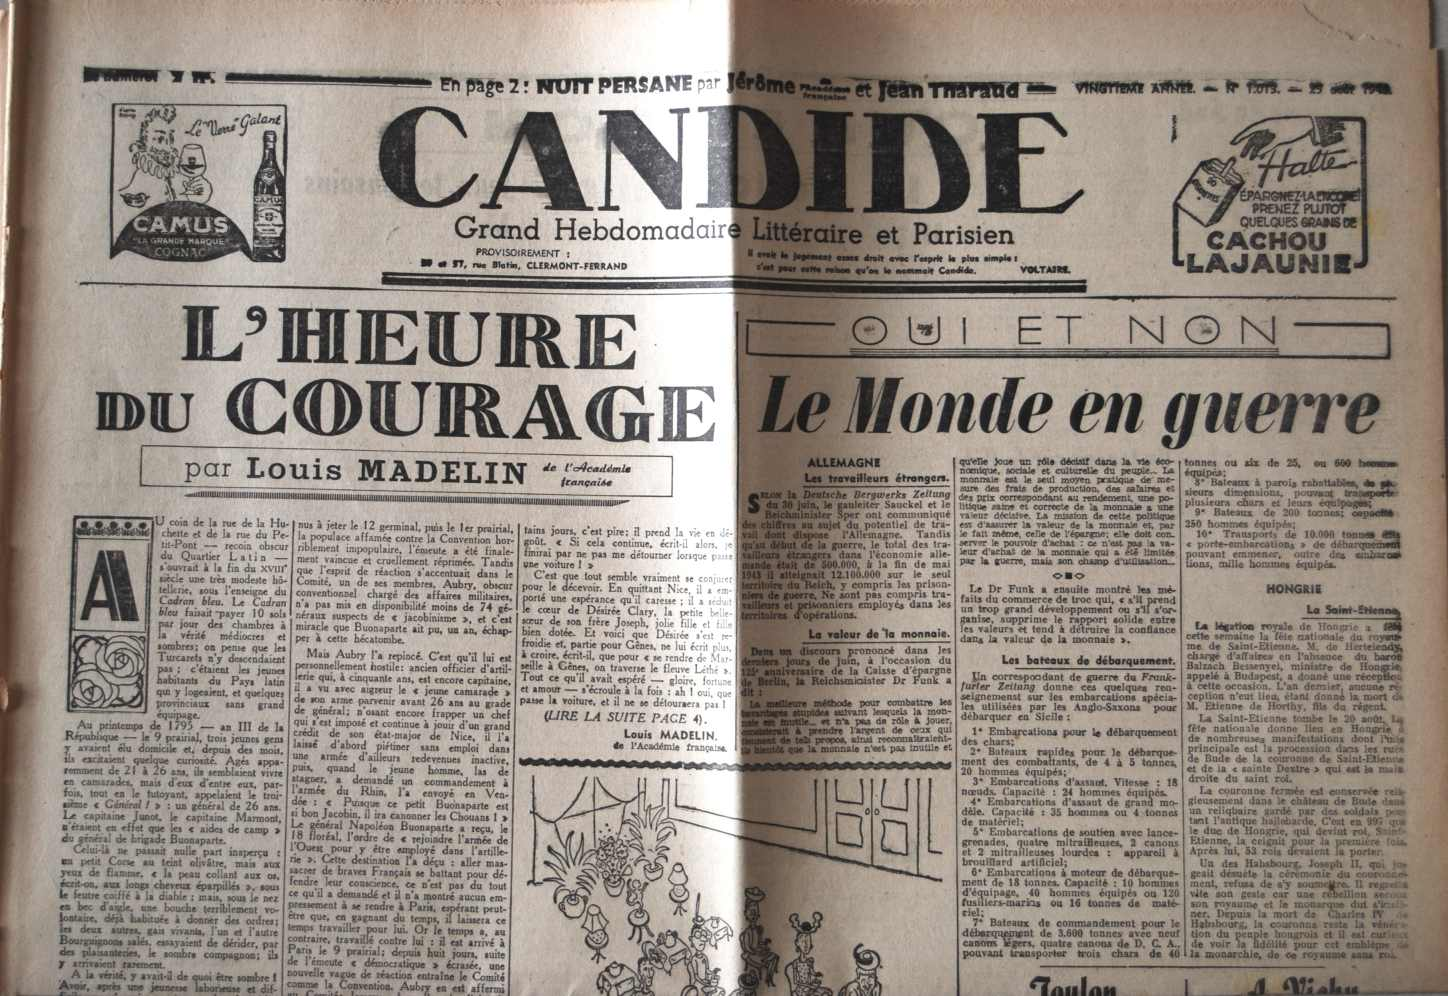 Candide 1013